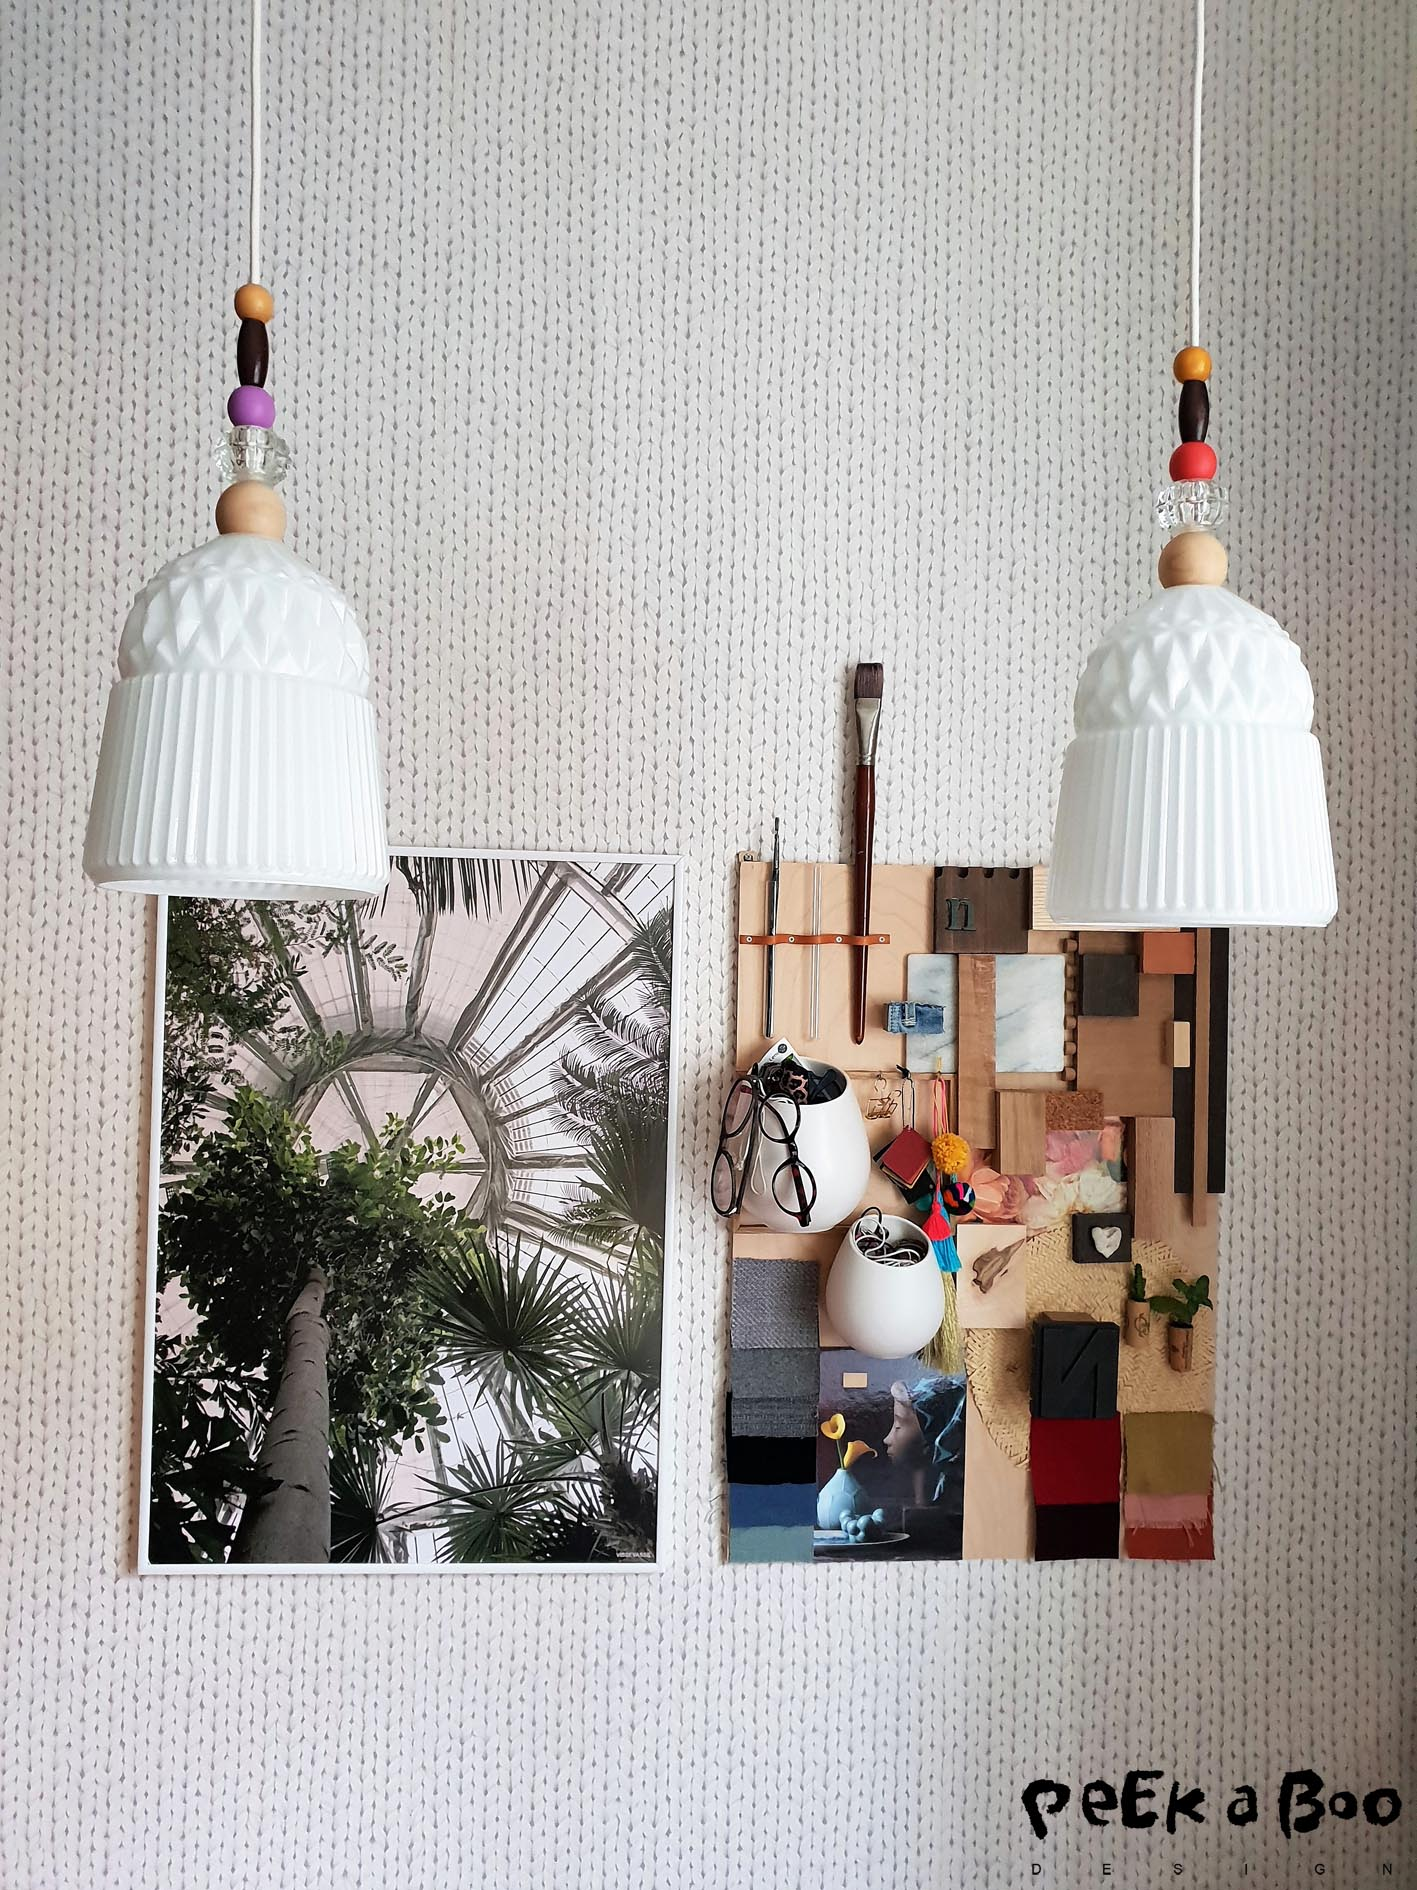 the Ikea lamps got a personal touch with the wooden beads. Ikea hacks rocks !